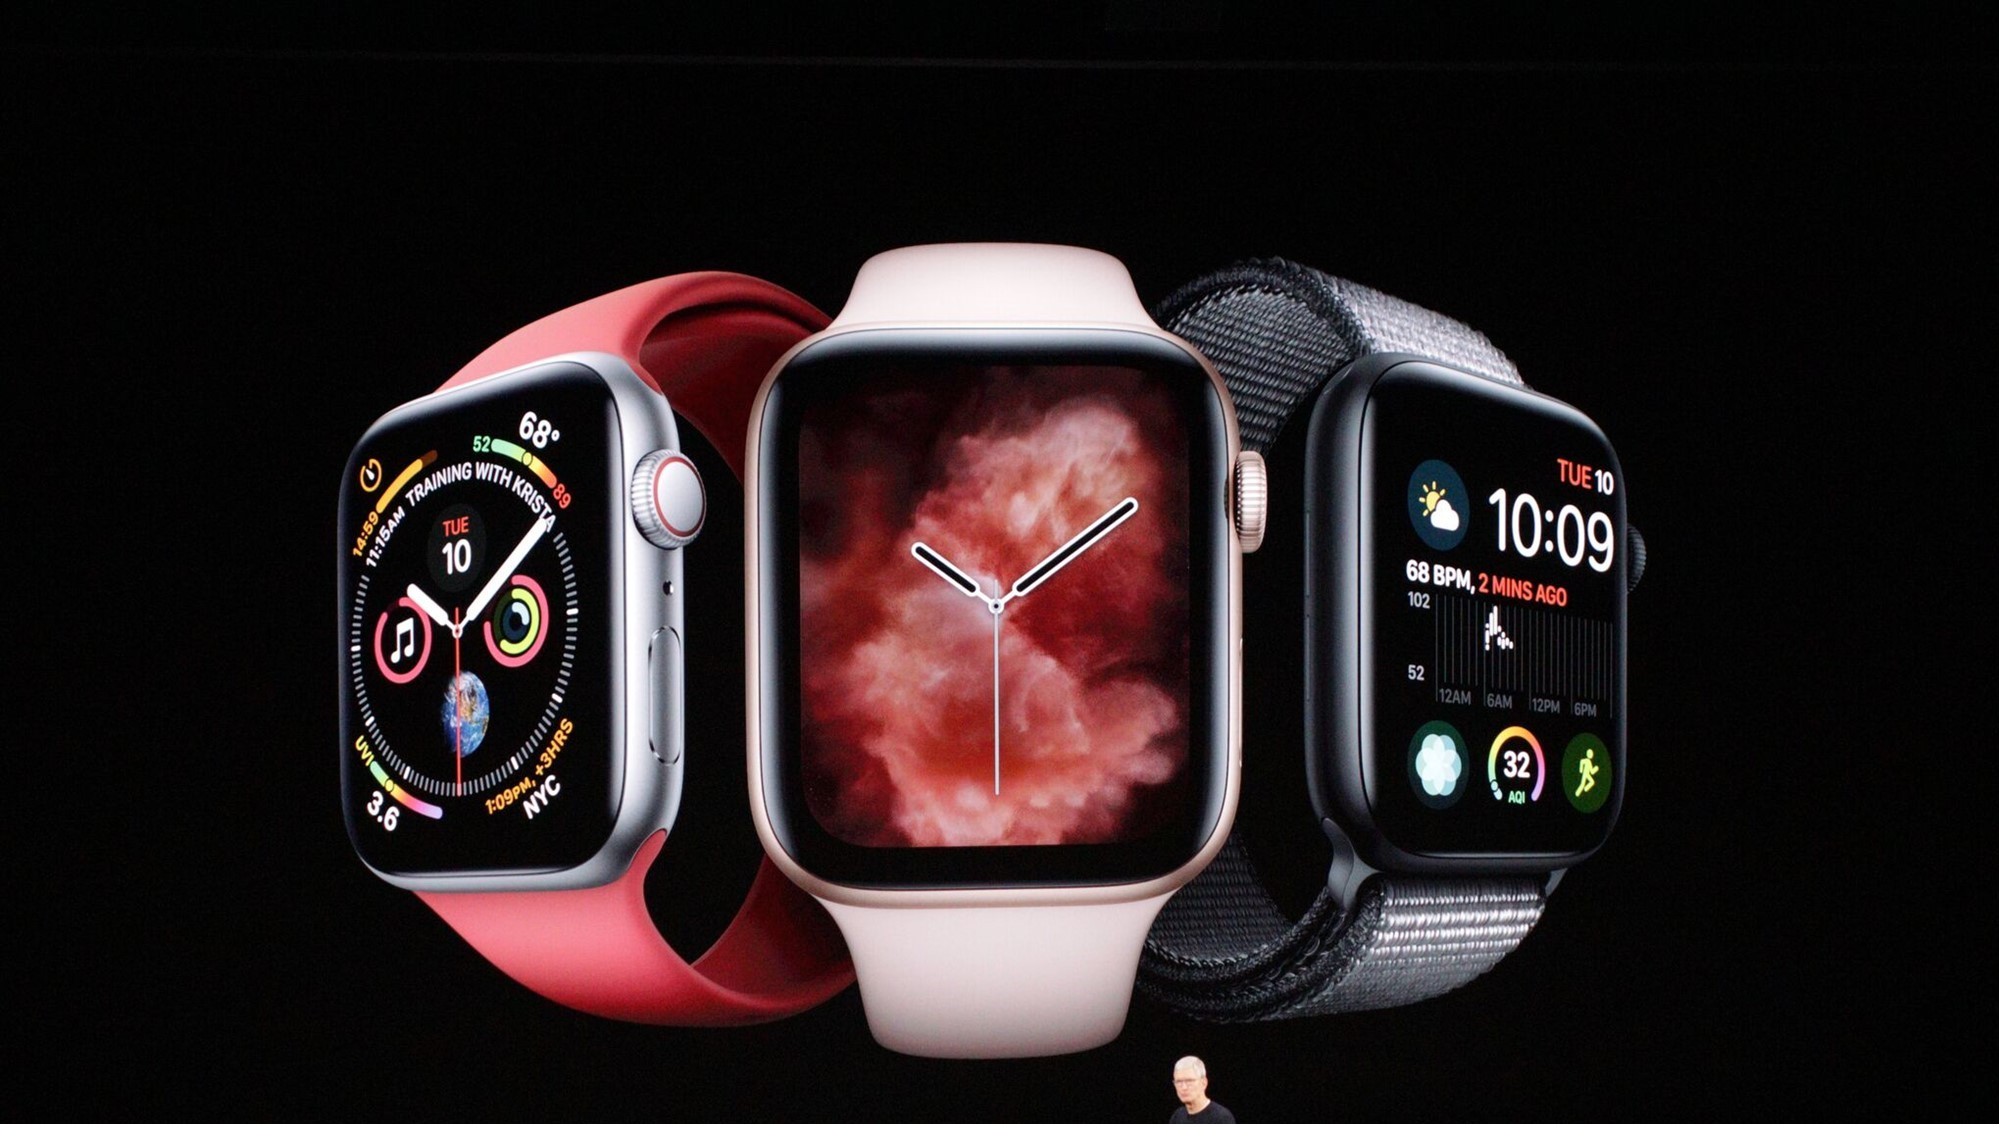 Apple Watch Tim Cook lansare iPhone 11